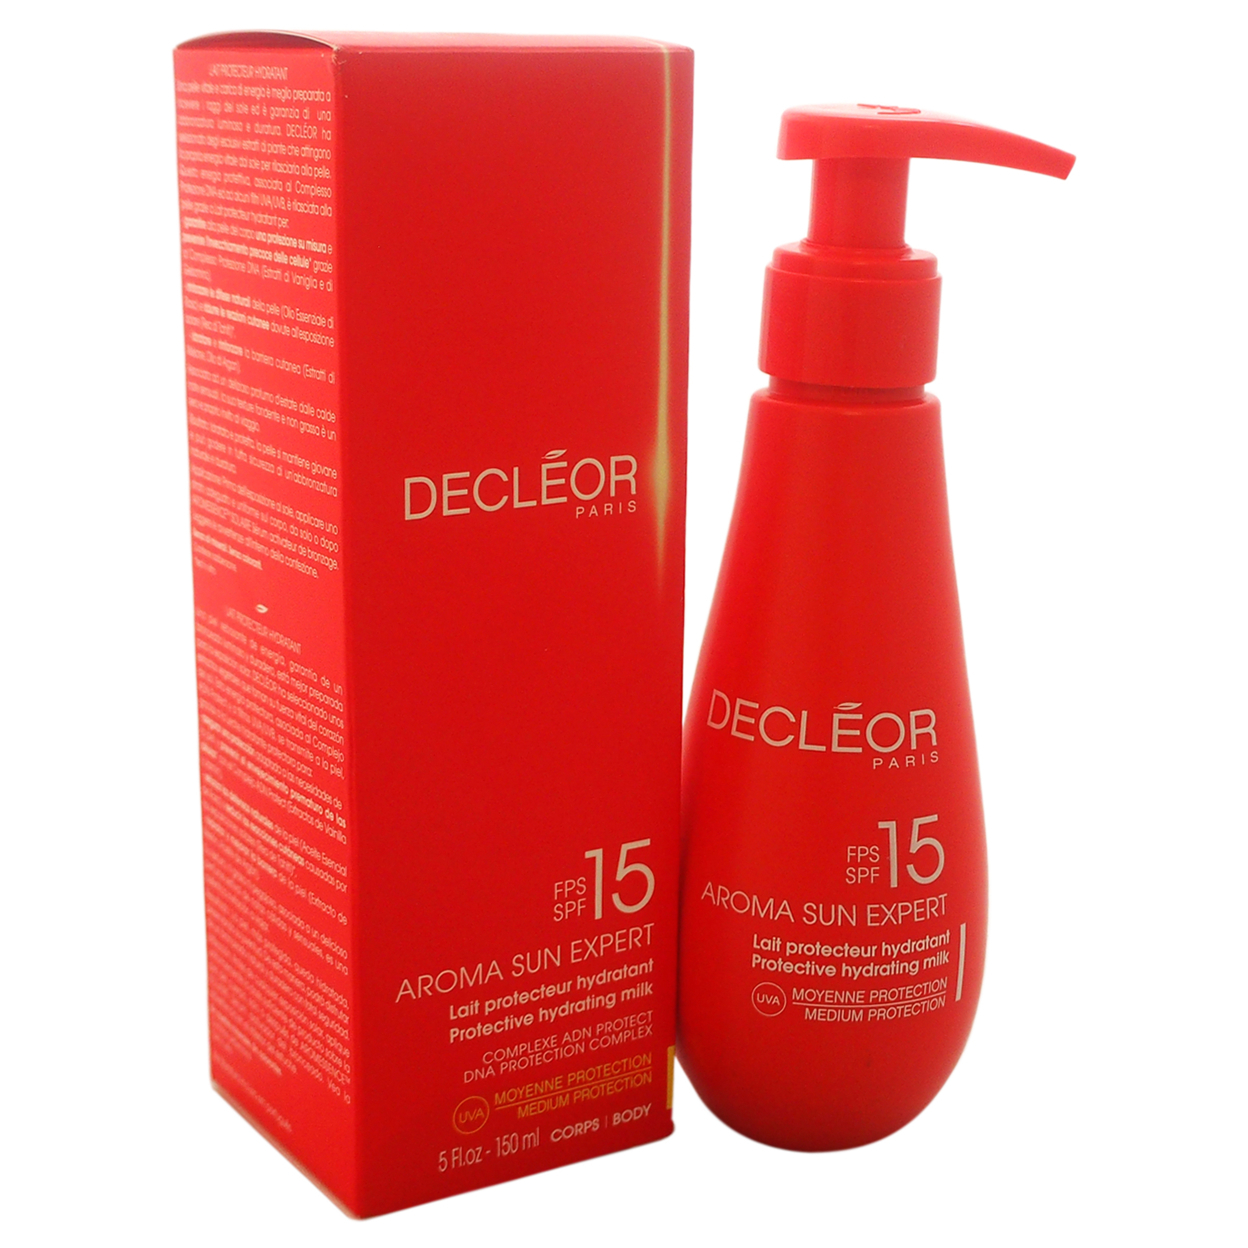 Aroma Sun Expert Protective Hydrating Milk SPF 15 by Decleor for Unisex - 5 oz Body Milk 583c6c36e2246159f167dcc2